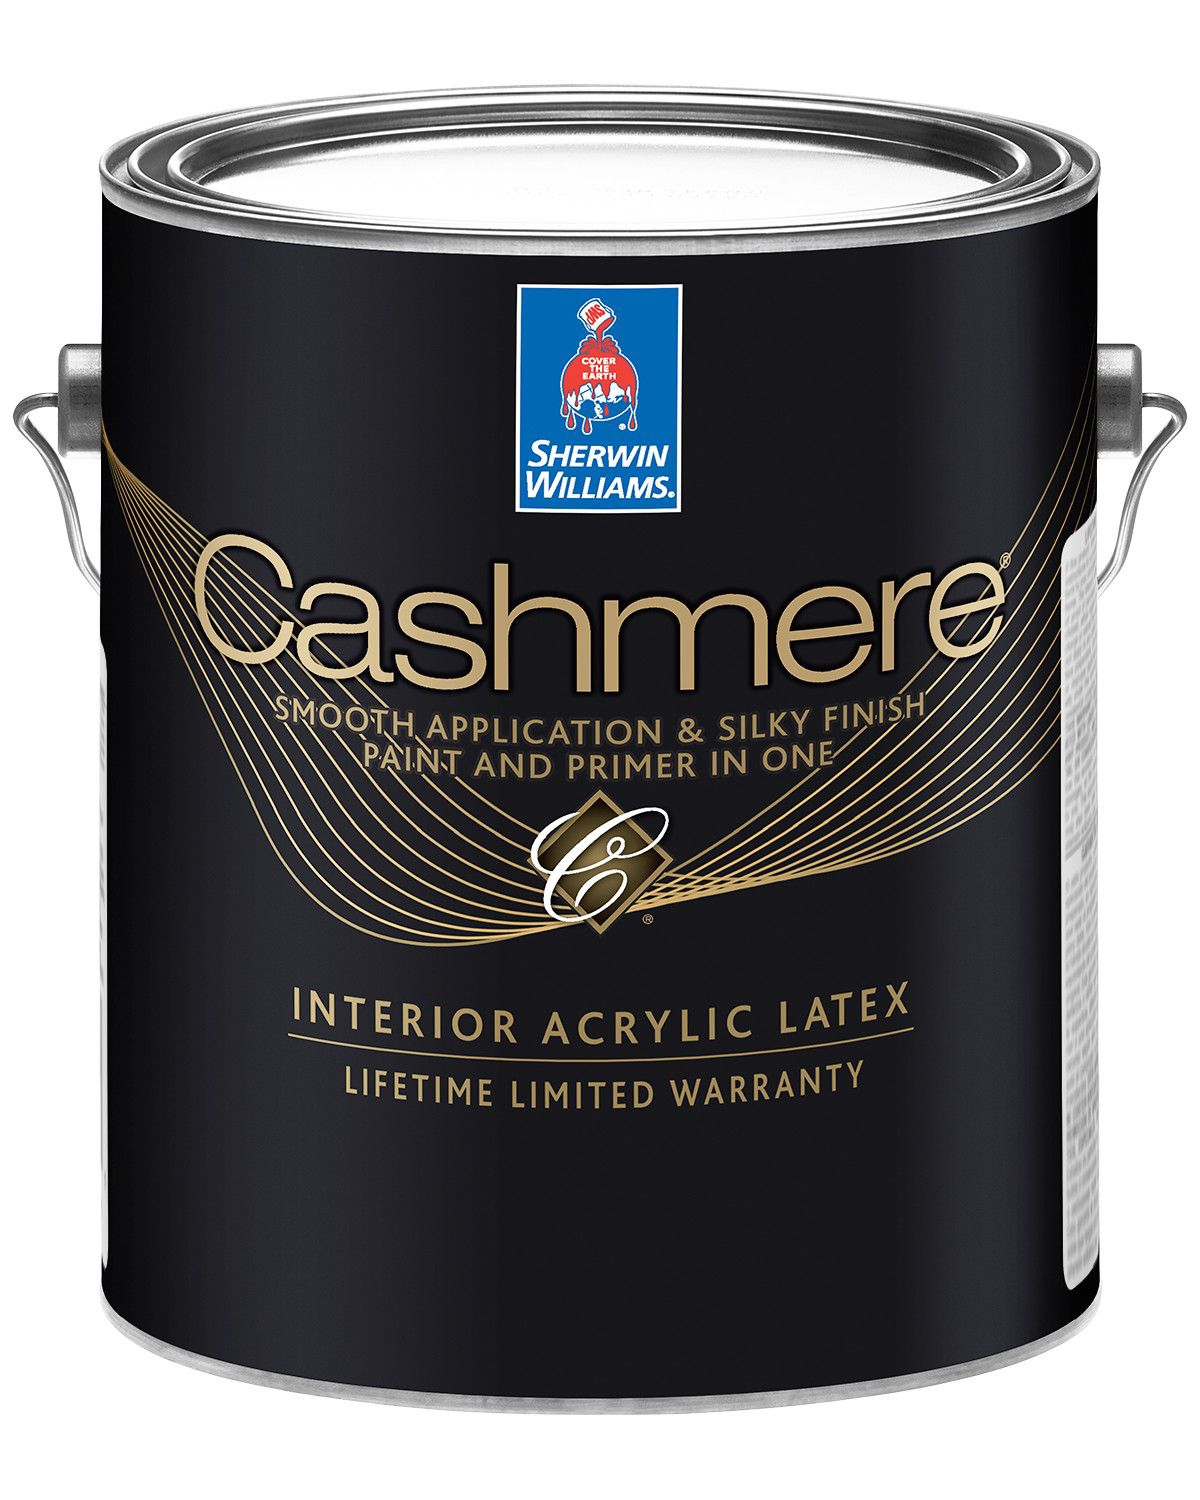 Image of paint can